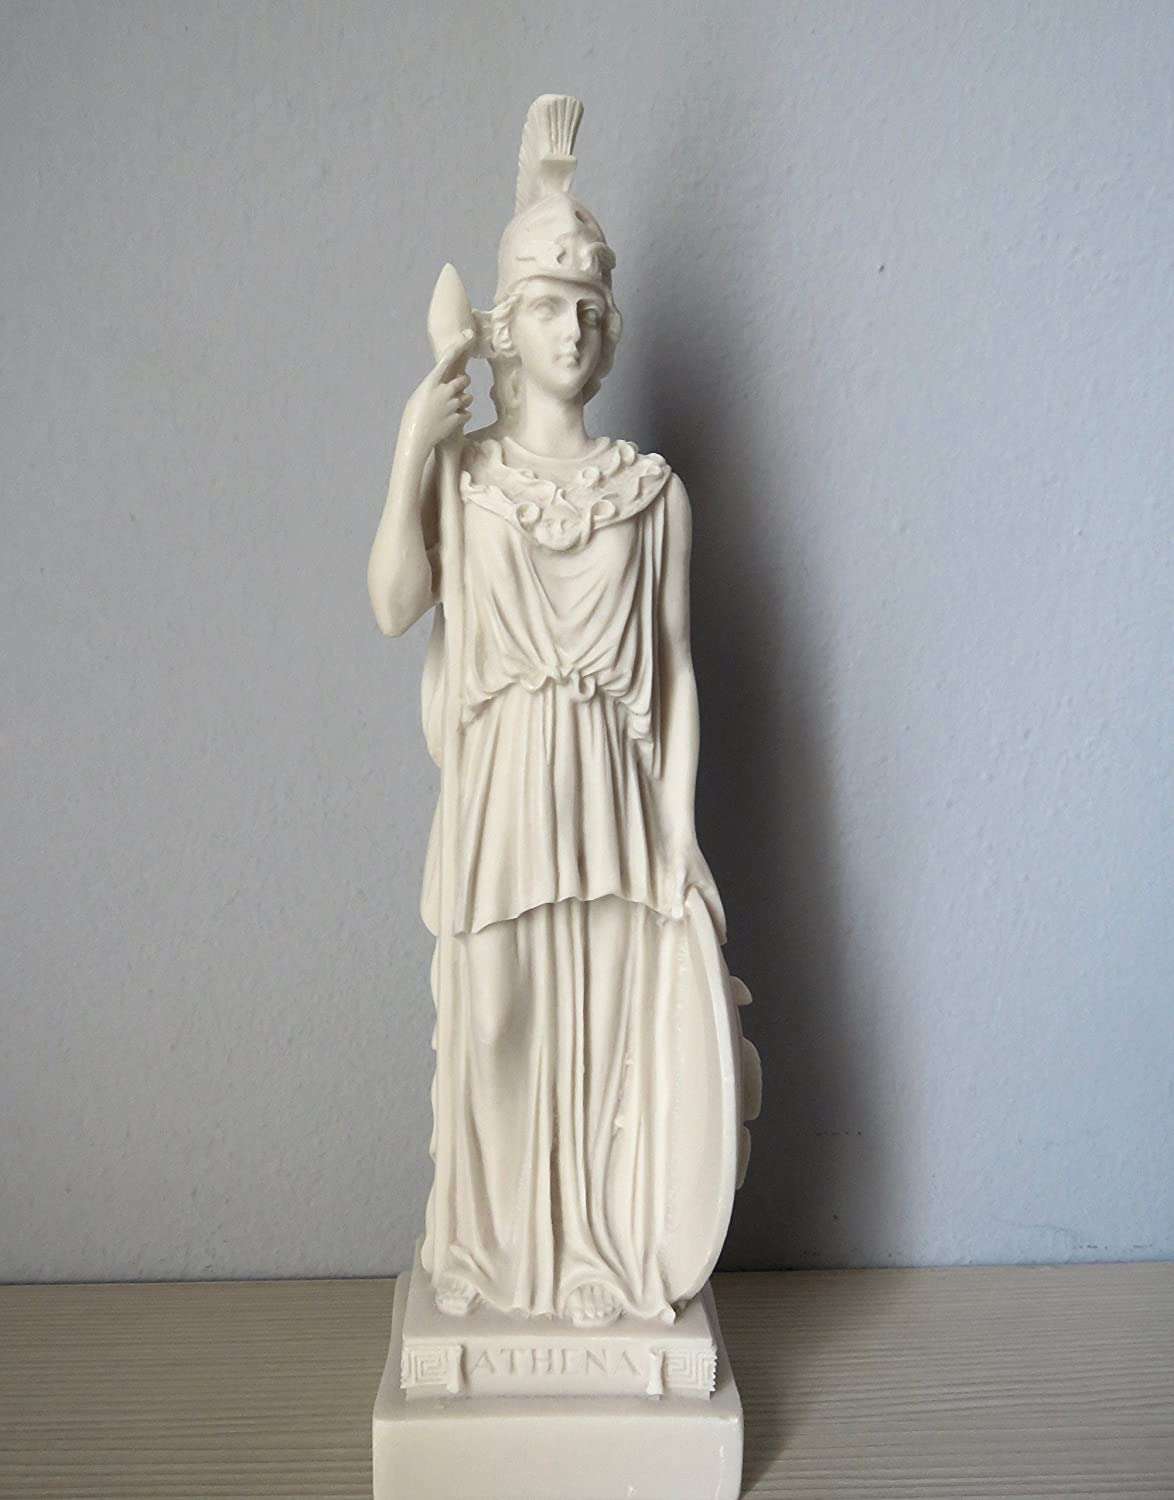 Goddess Athena Statuette 8.5 Inch Tall 1.8 lb Greek Museum  Ships from USA Solid Brass Statue on Marble Base in Armor And Spear